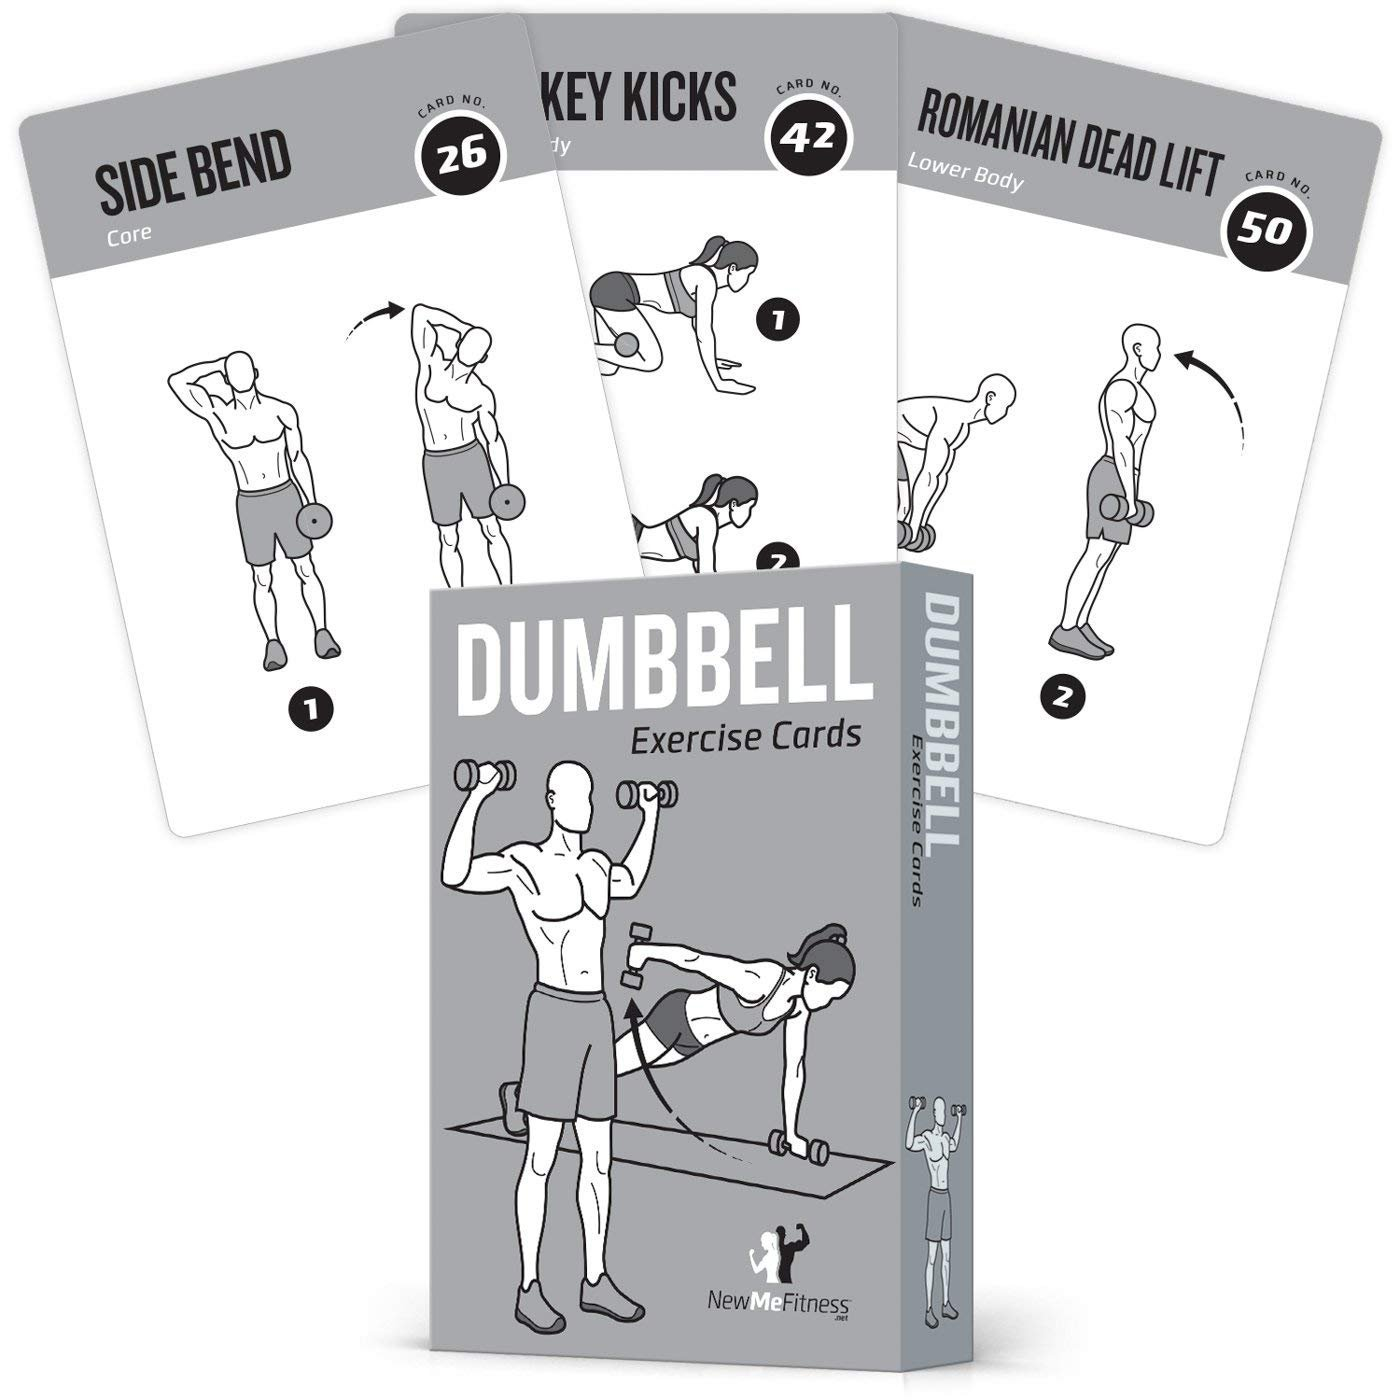 "EXERCISE CARDS DUMBBELL Home Gym Workouts Strength Training Building Muscle Total Body Fitness Guide Workout Routines Bodybuilding Personal Trainer Large Waterproof Plastic 3.5""x5"" Cards Burn Fat NewMe Fitness"